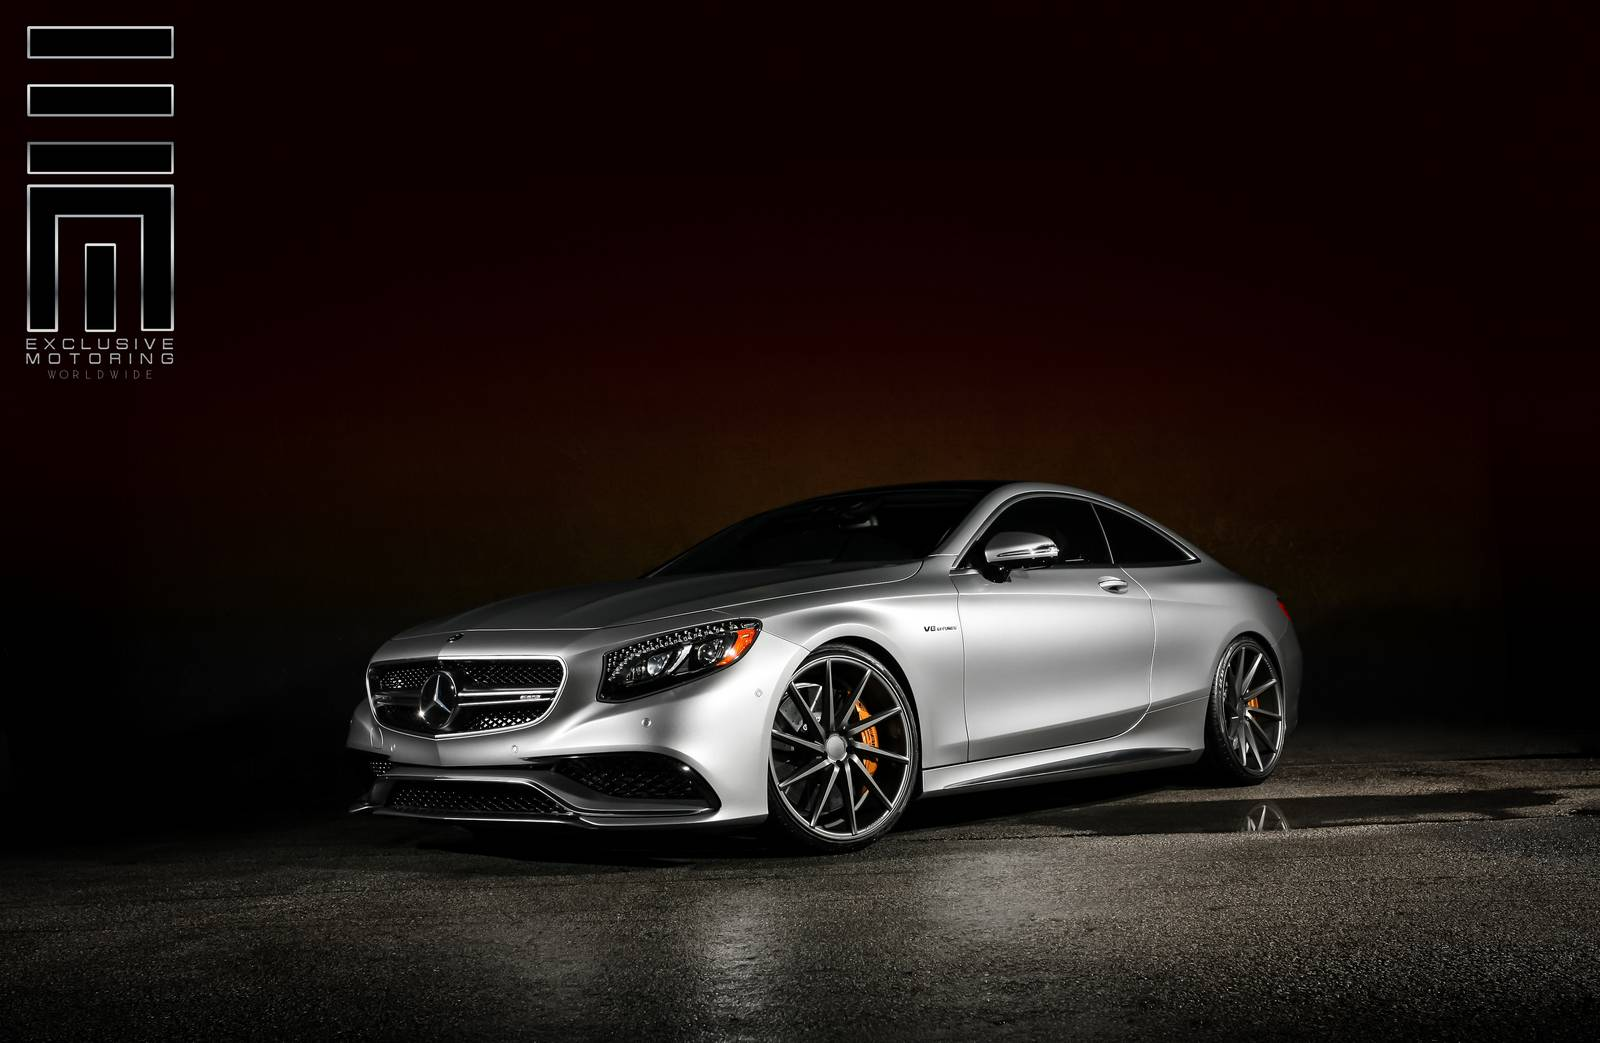 Used 2014 Mercedes Benz S550 For Sale Carmax Autos Post